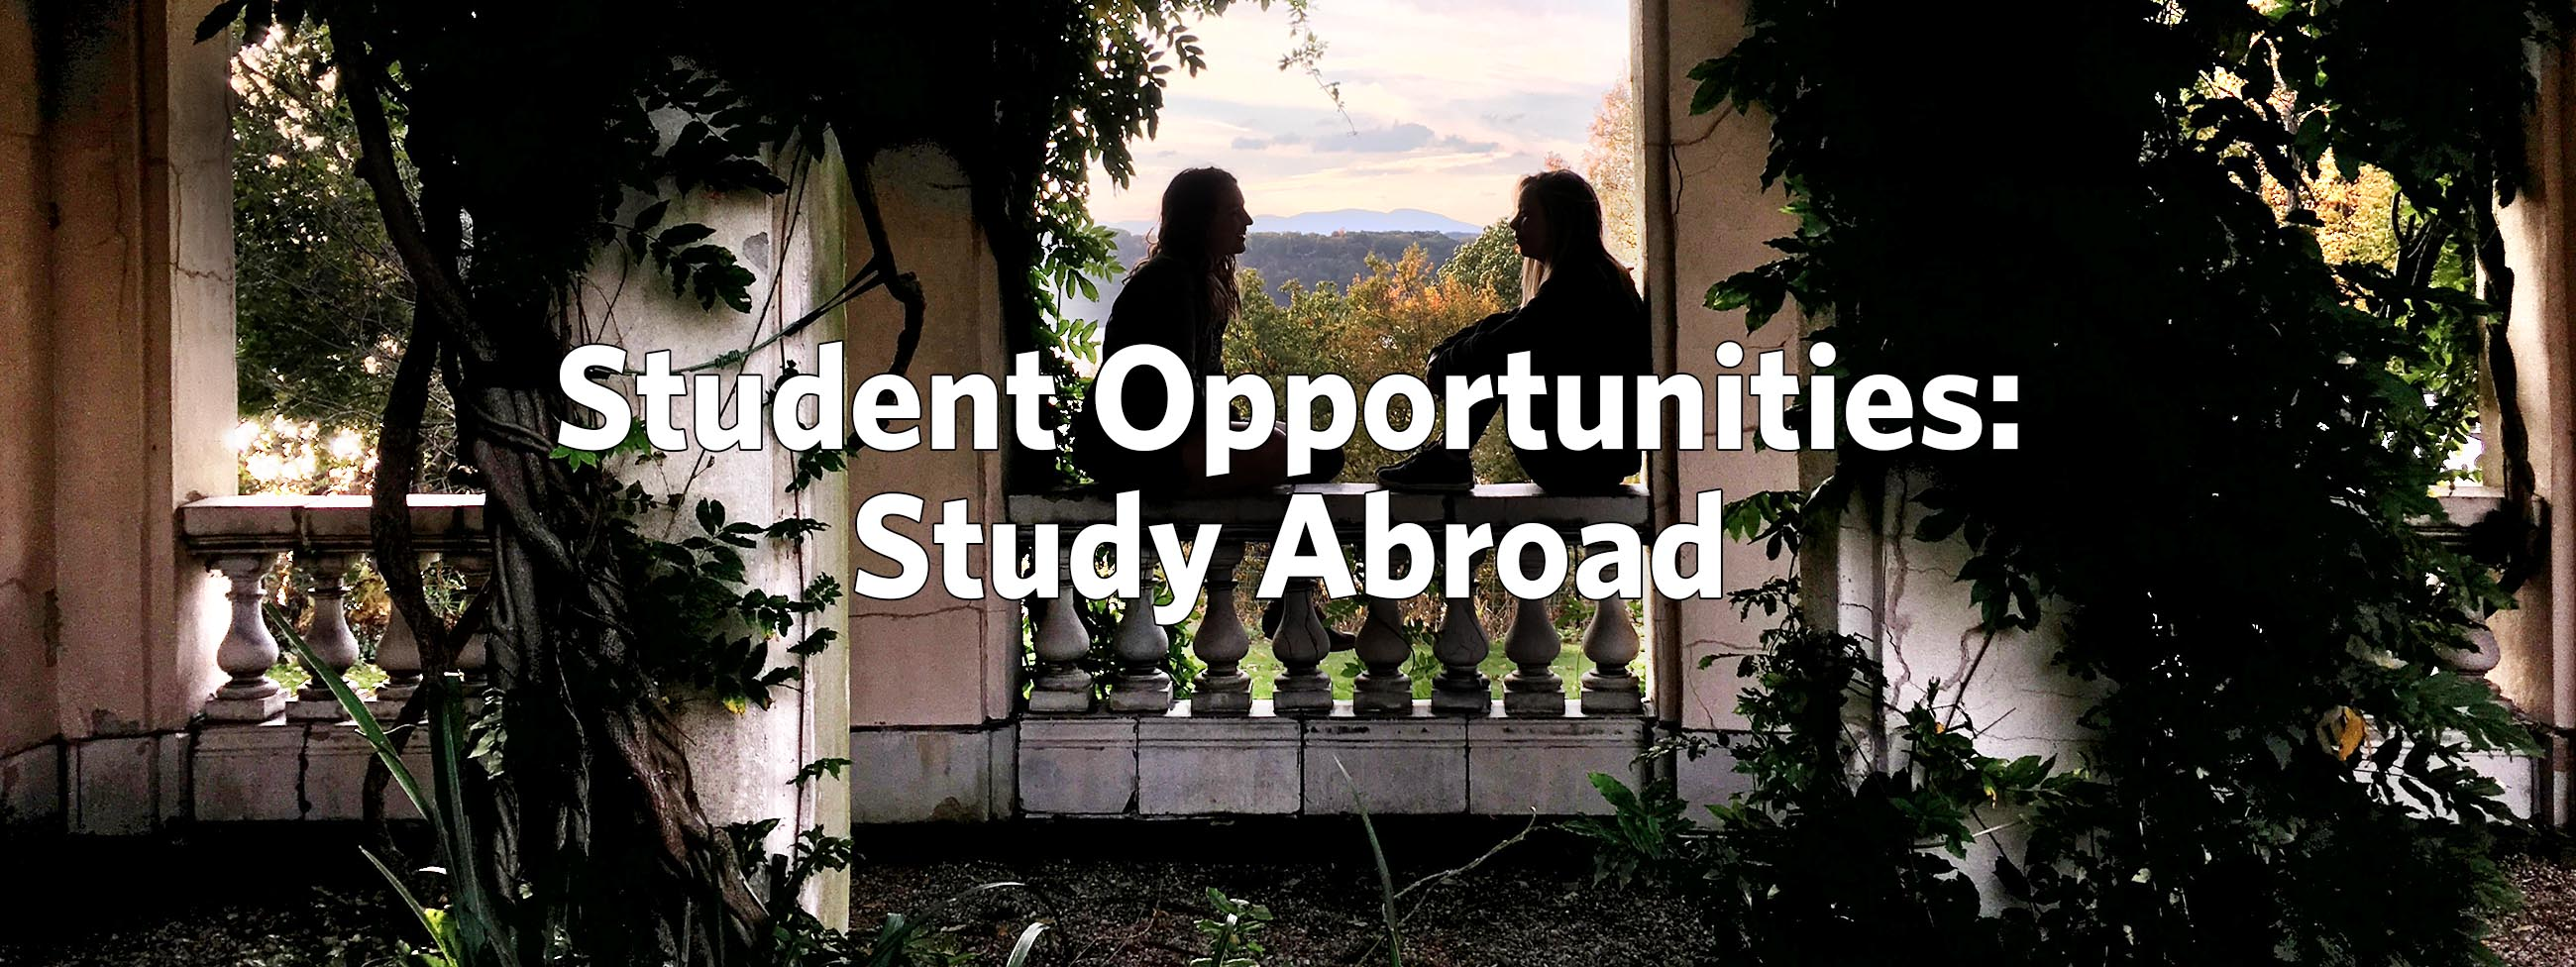 Main Image for Study abroad